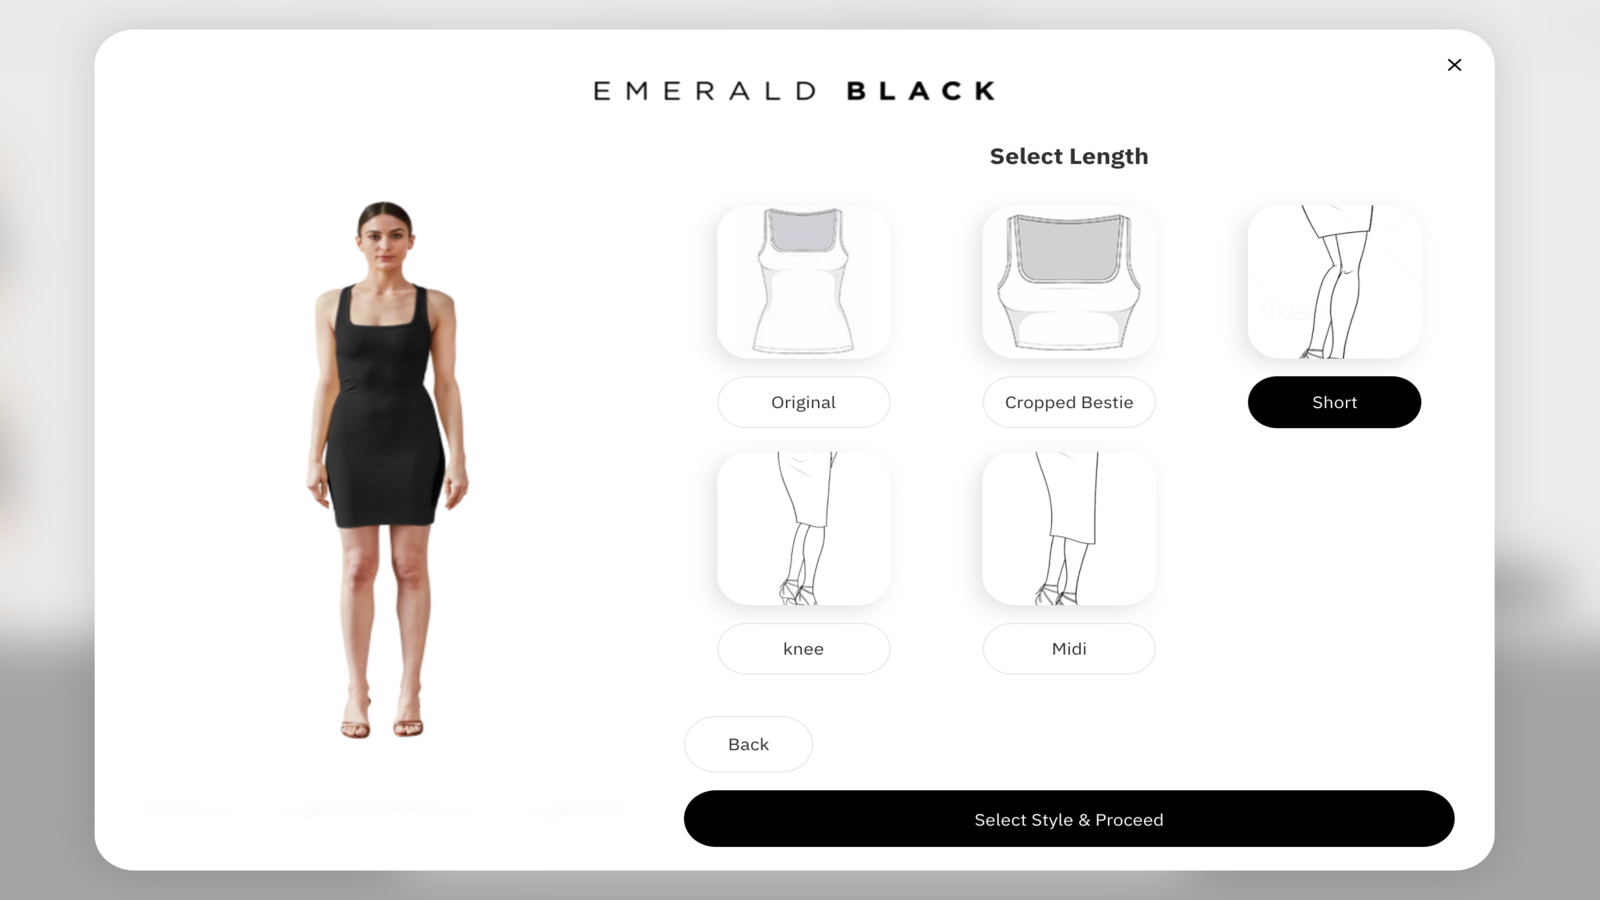 2- View all product options on storefront